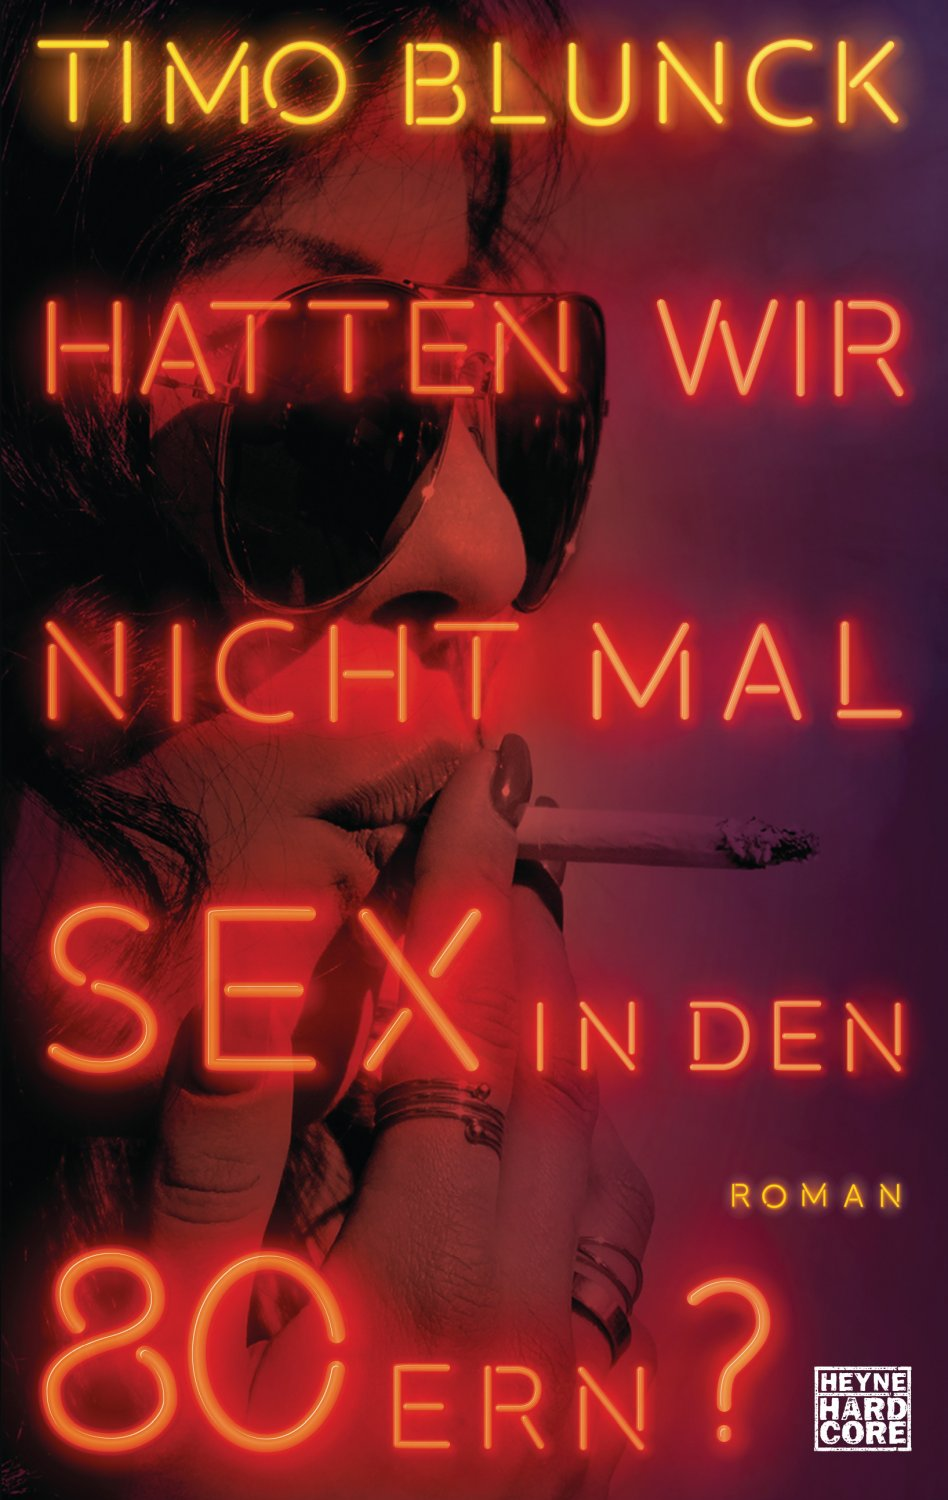 Blunck_THatten_wir_Sex_in_den_80_185304